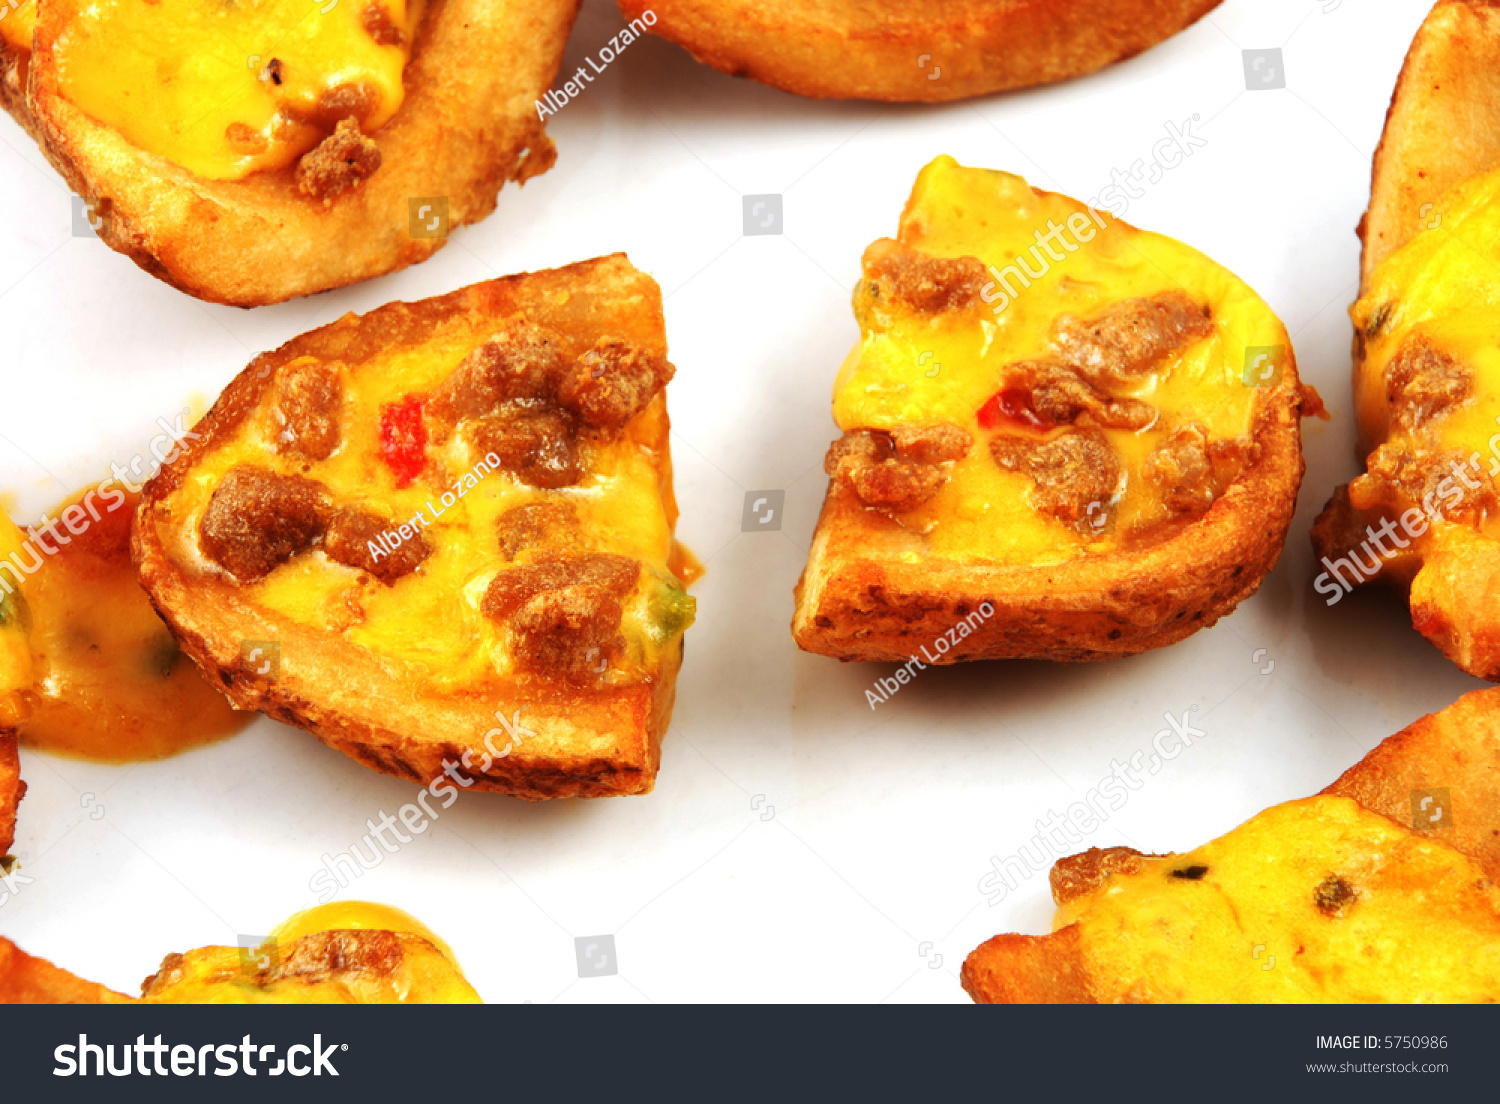 Stock Pictures Potato Skins Loaded Chesse Stock Photo 5750986 ...